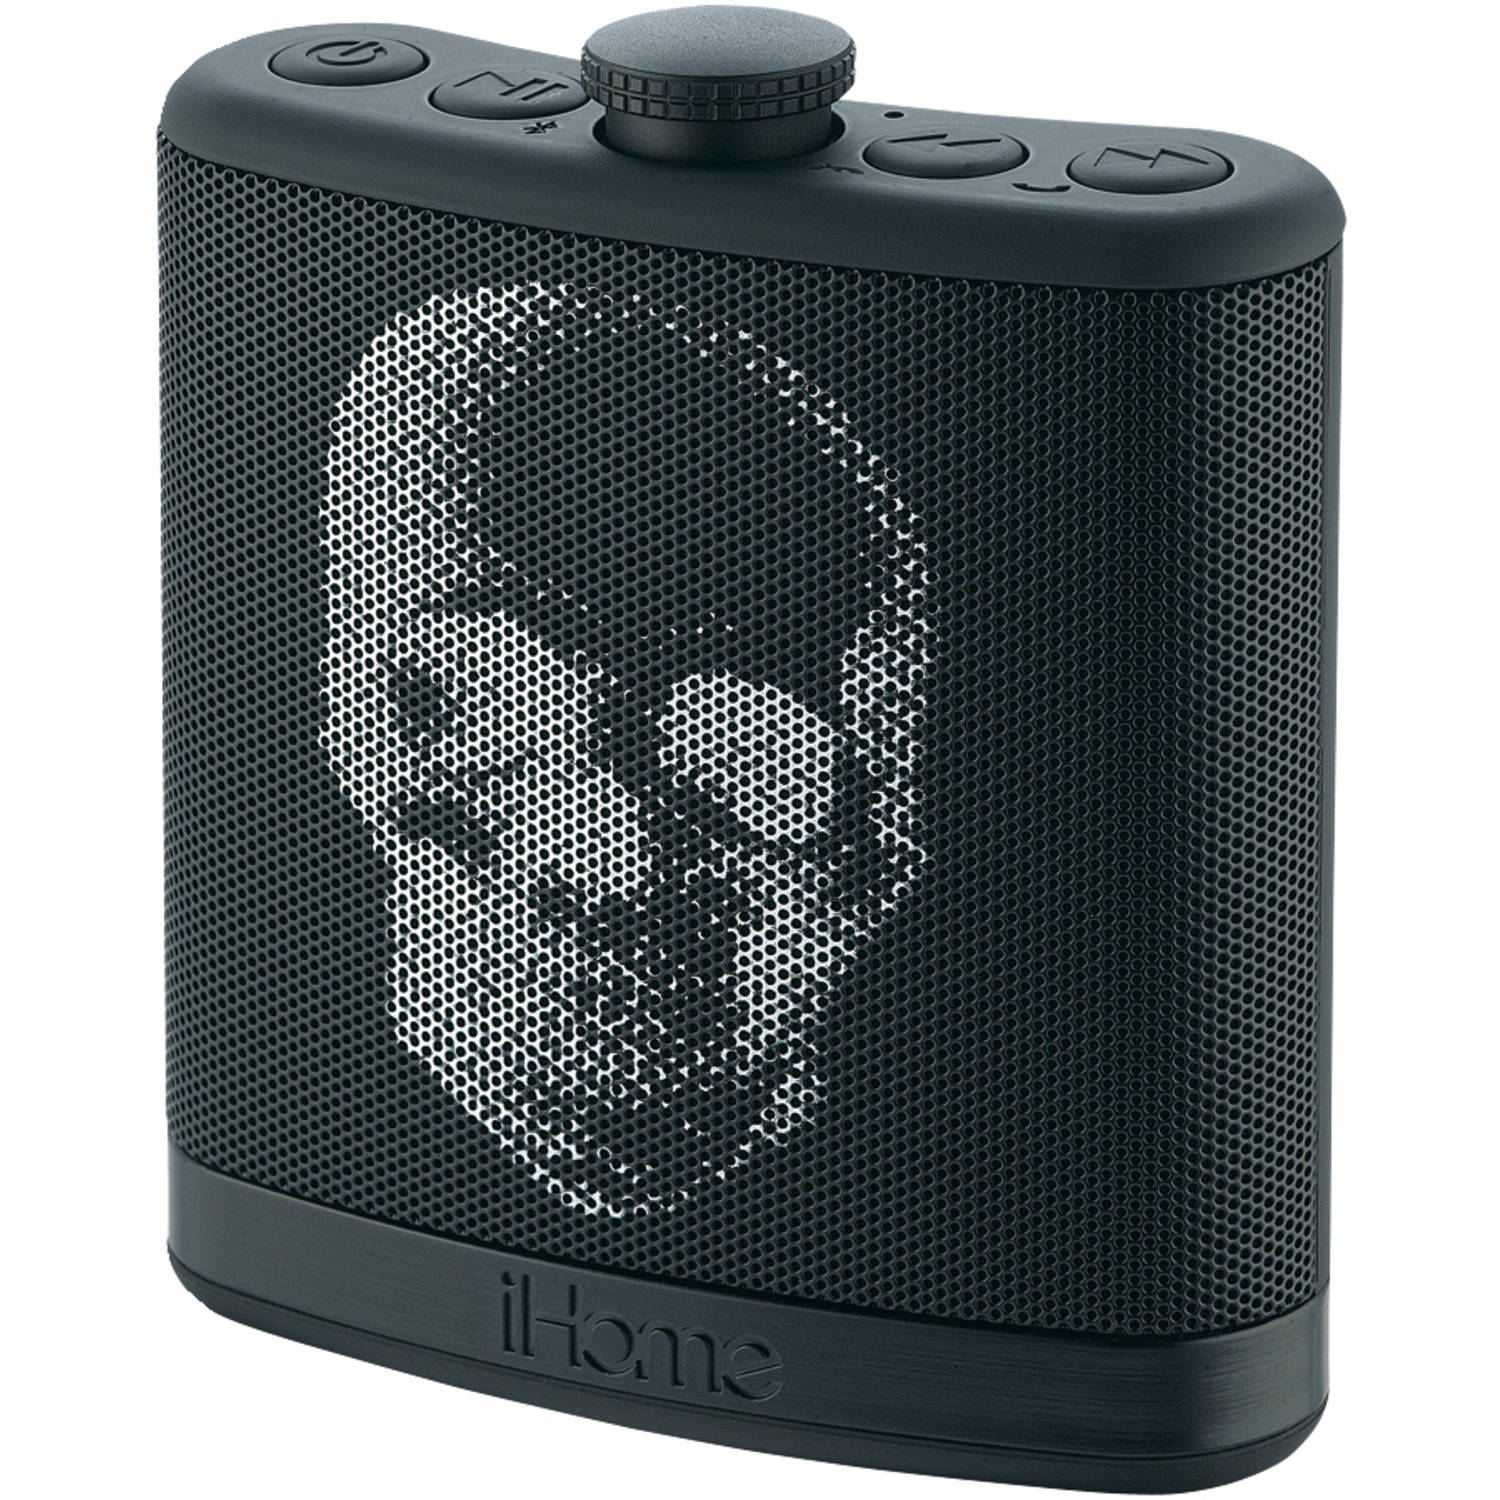 iHome Rechargeable Flask-Shaped Bluetooth Stereo Speaker with Custom Sound Case, Black Skull